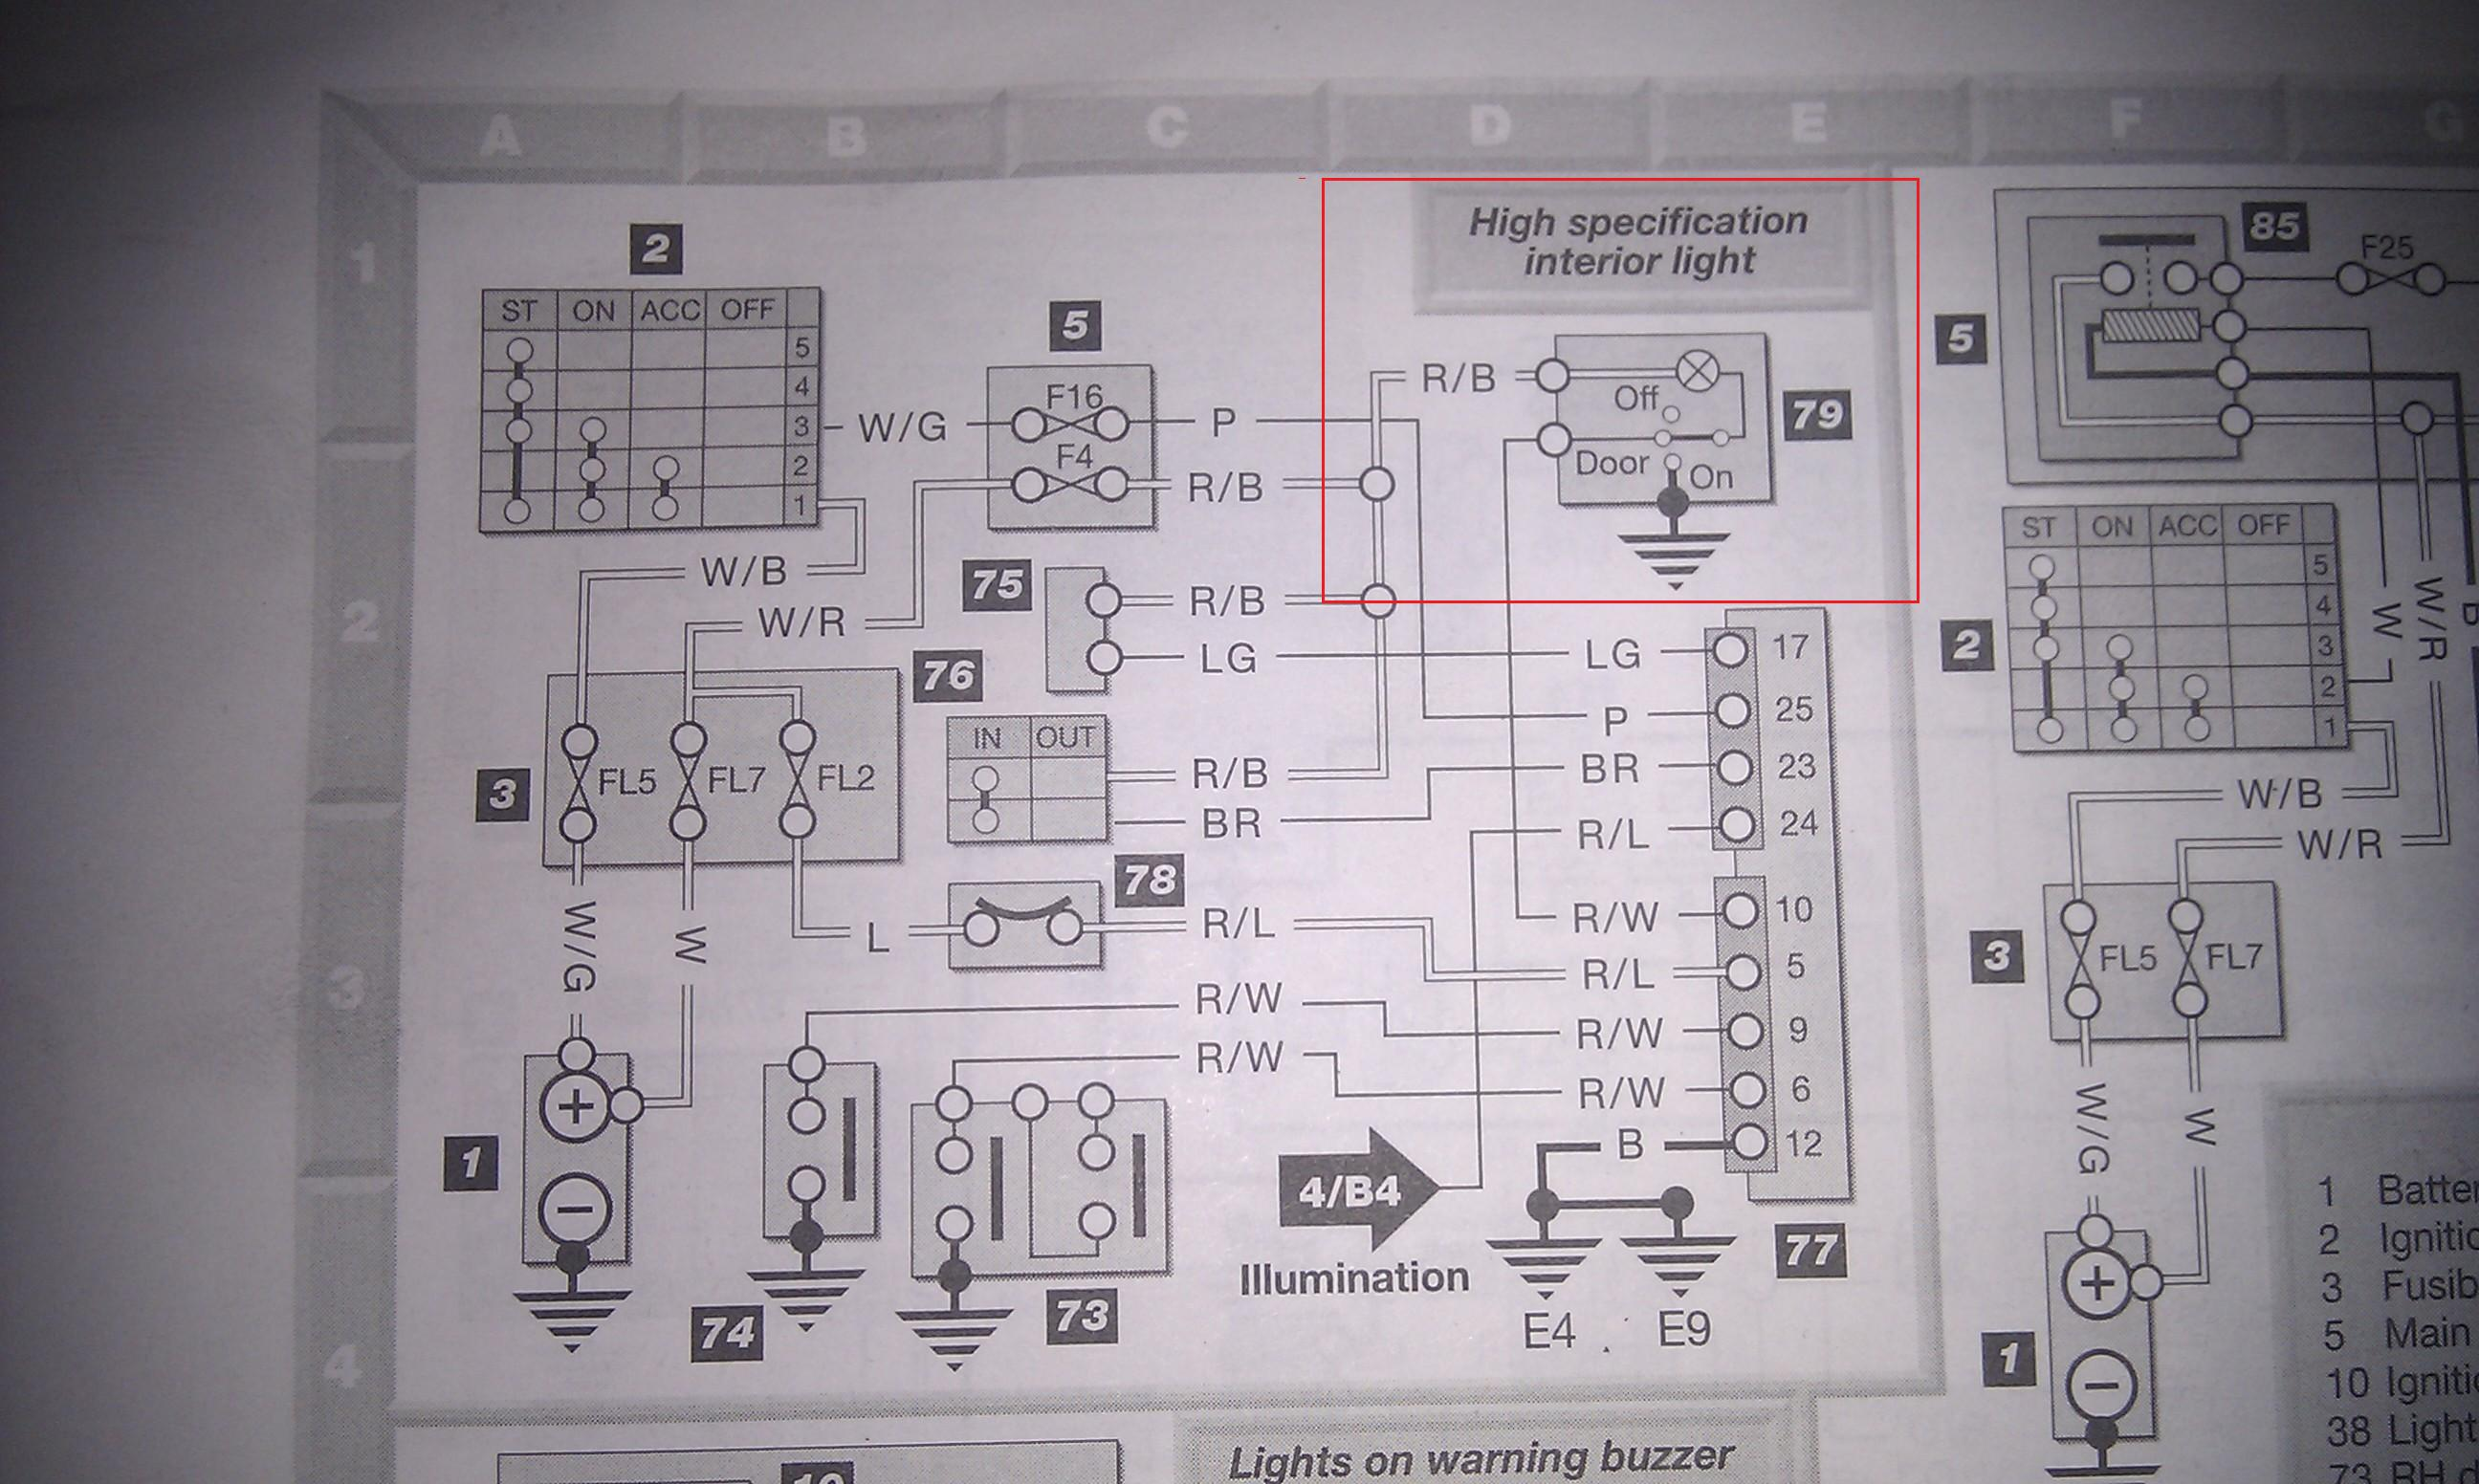 wiring diagram k11 micra sports club rh micra org uk nissan micra wiring diagram for stereo nissan micra k13 wiring diagram